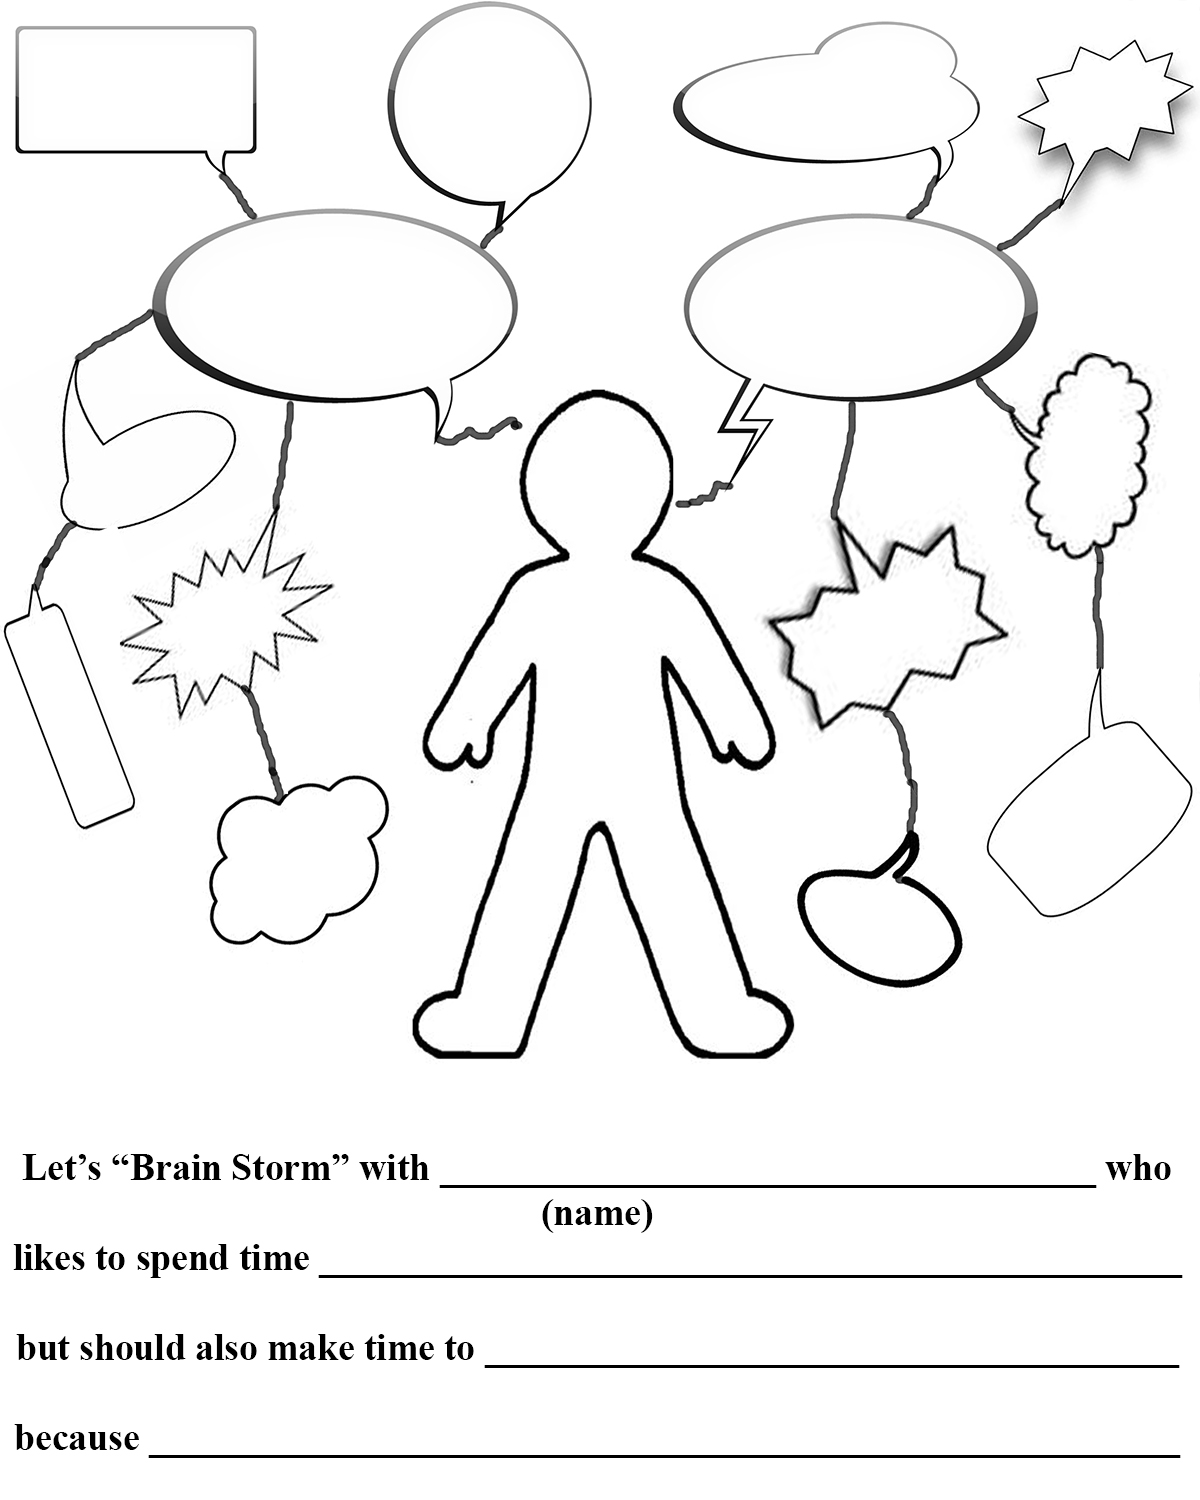 The SelfEntitled Villain – Brainstorm Worksheet